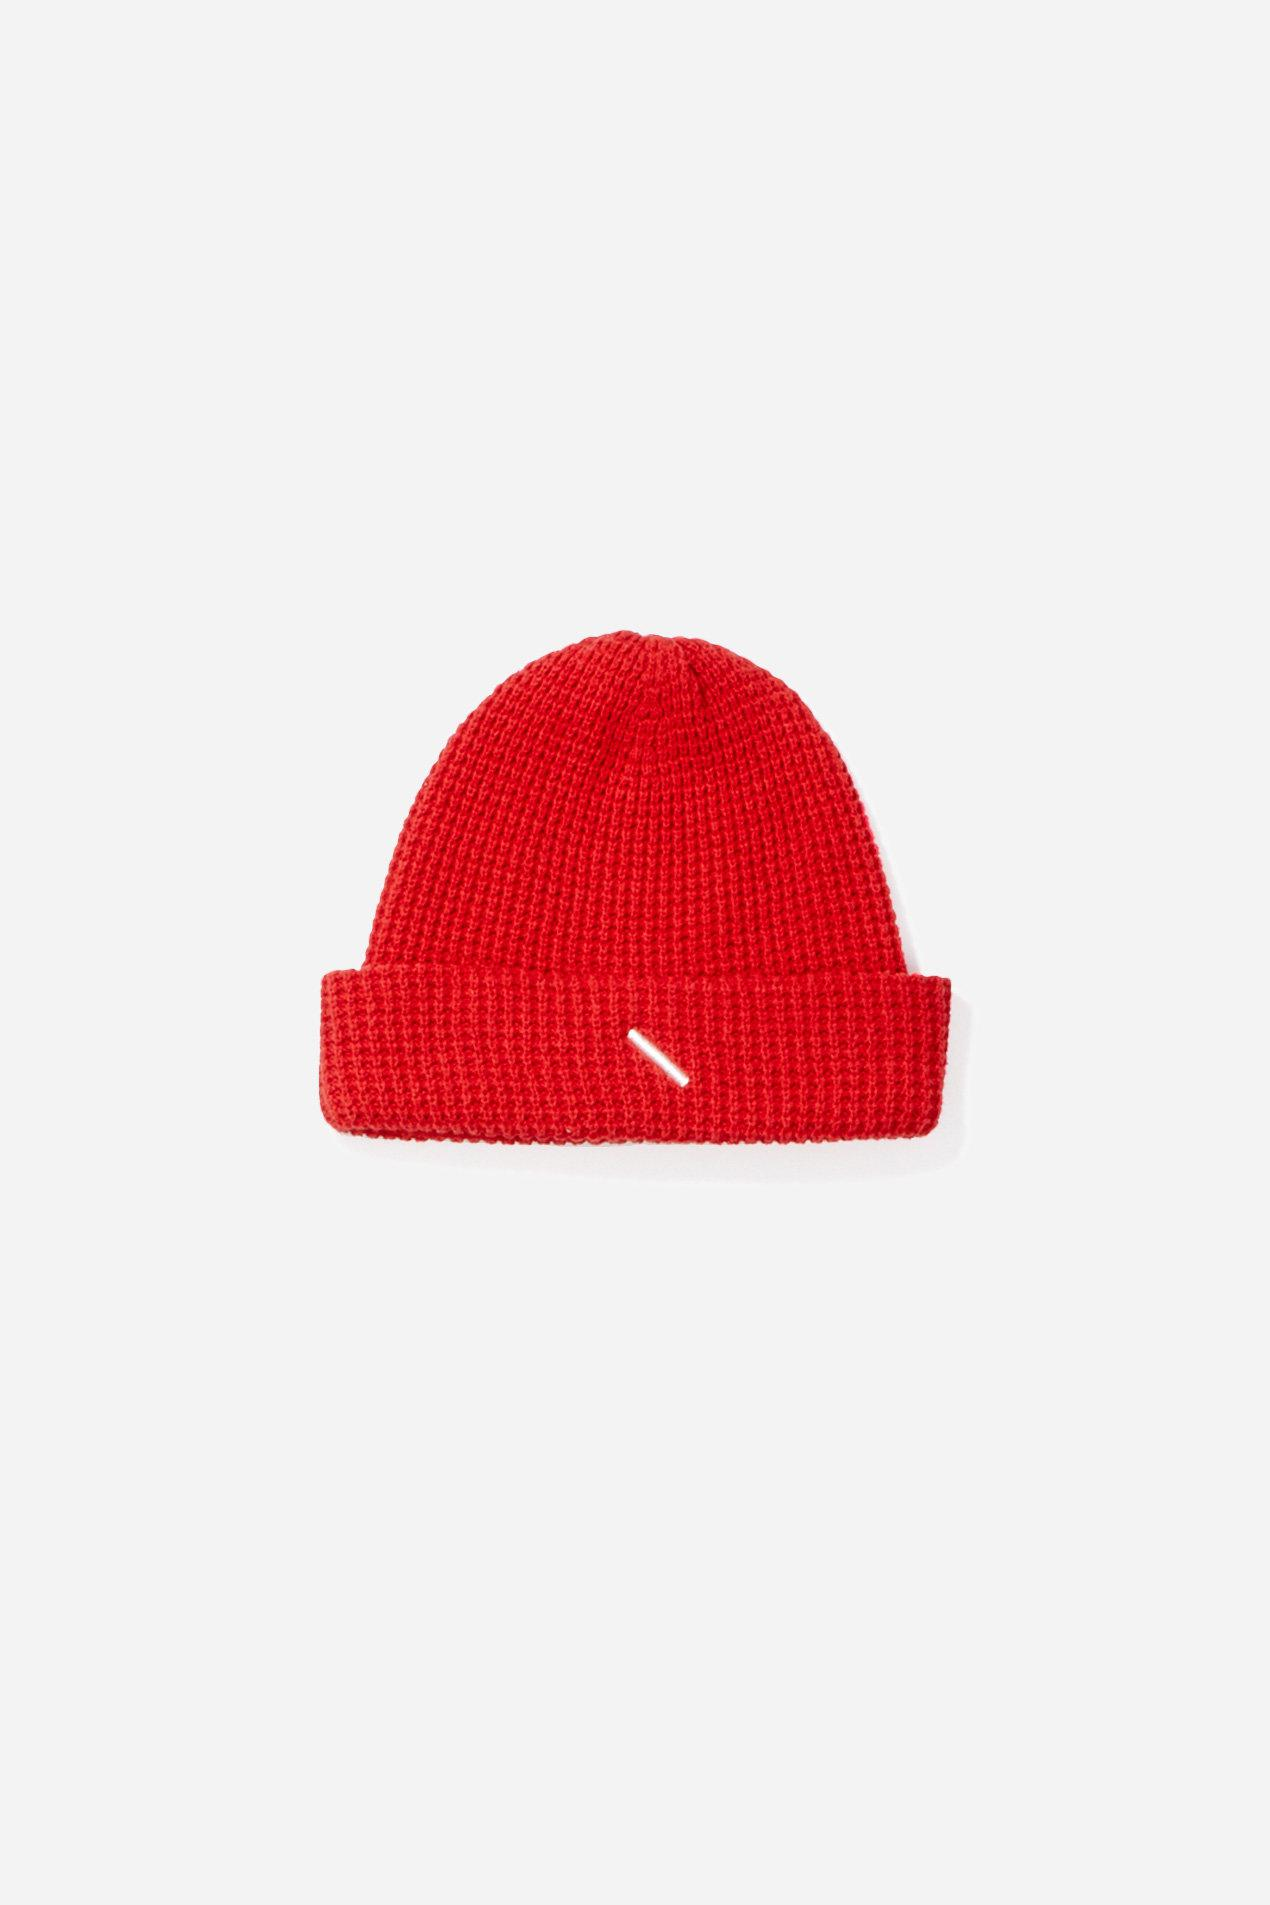 37b3df169 Men's Red Waffle Crepe Beanie